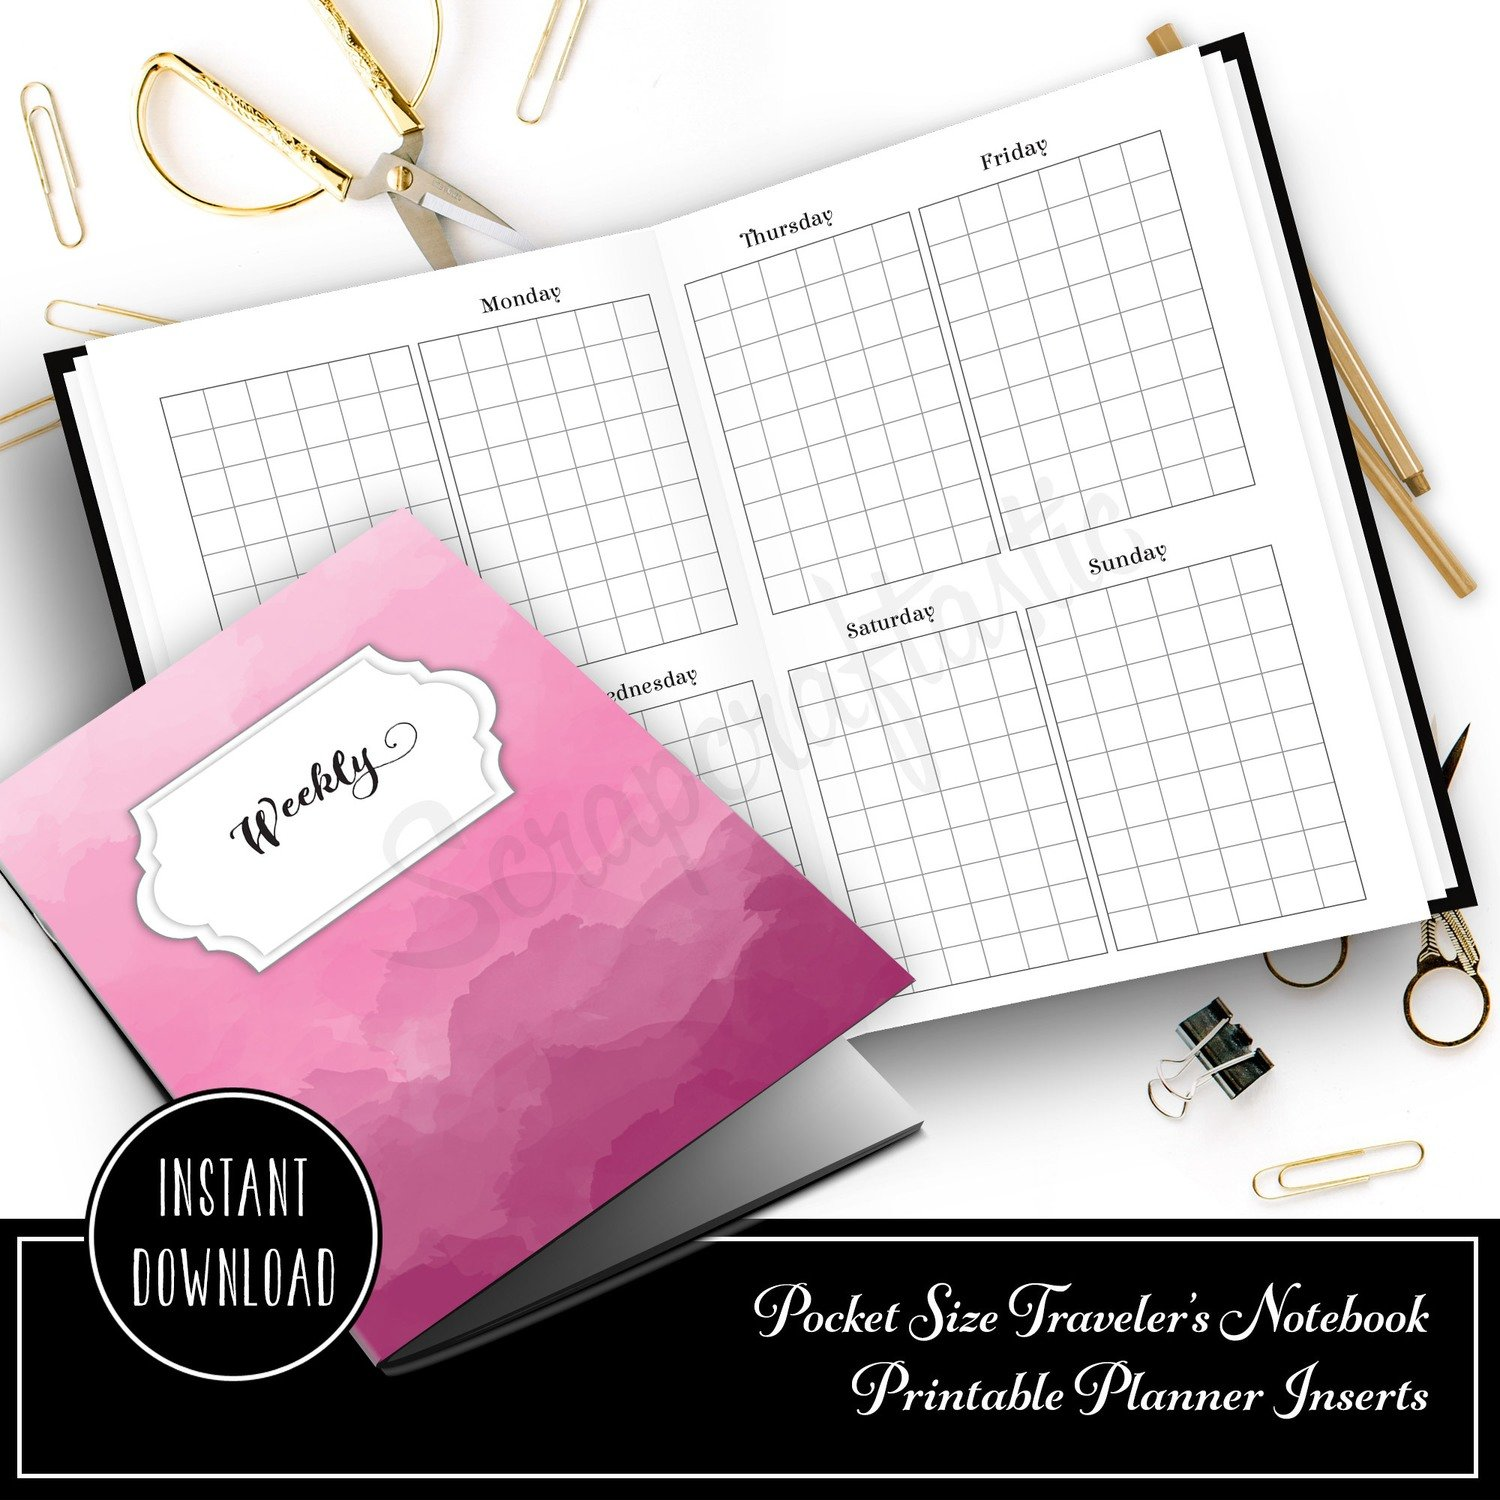 Full Month Notebook: Week on Two Pages Vertical Grid Undated Pocket Traveler's Notebook Printable Insert